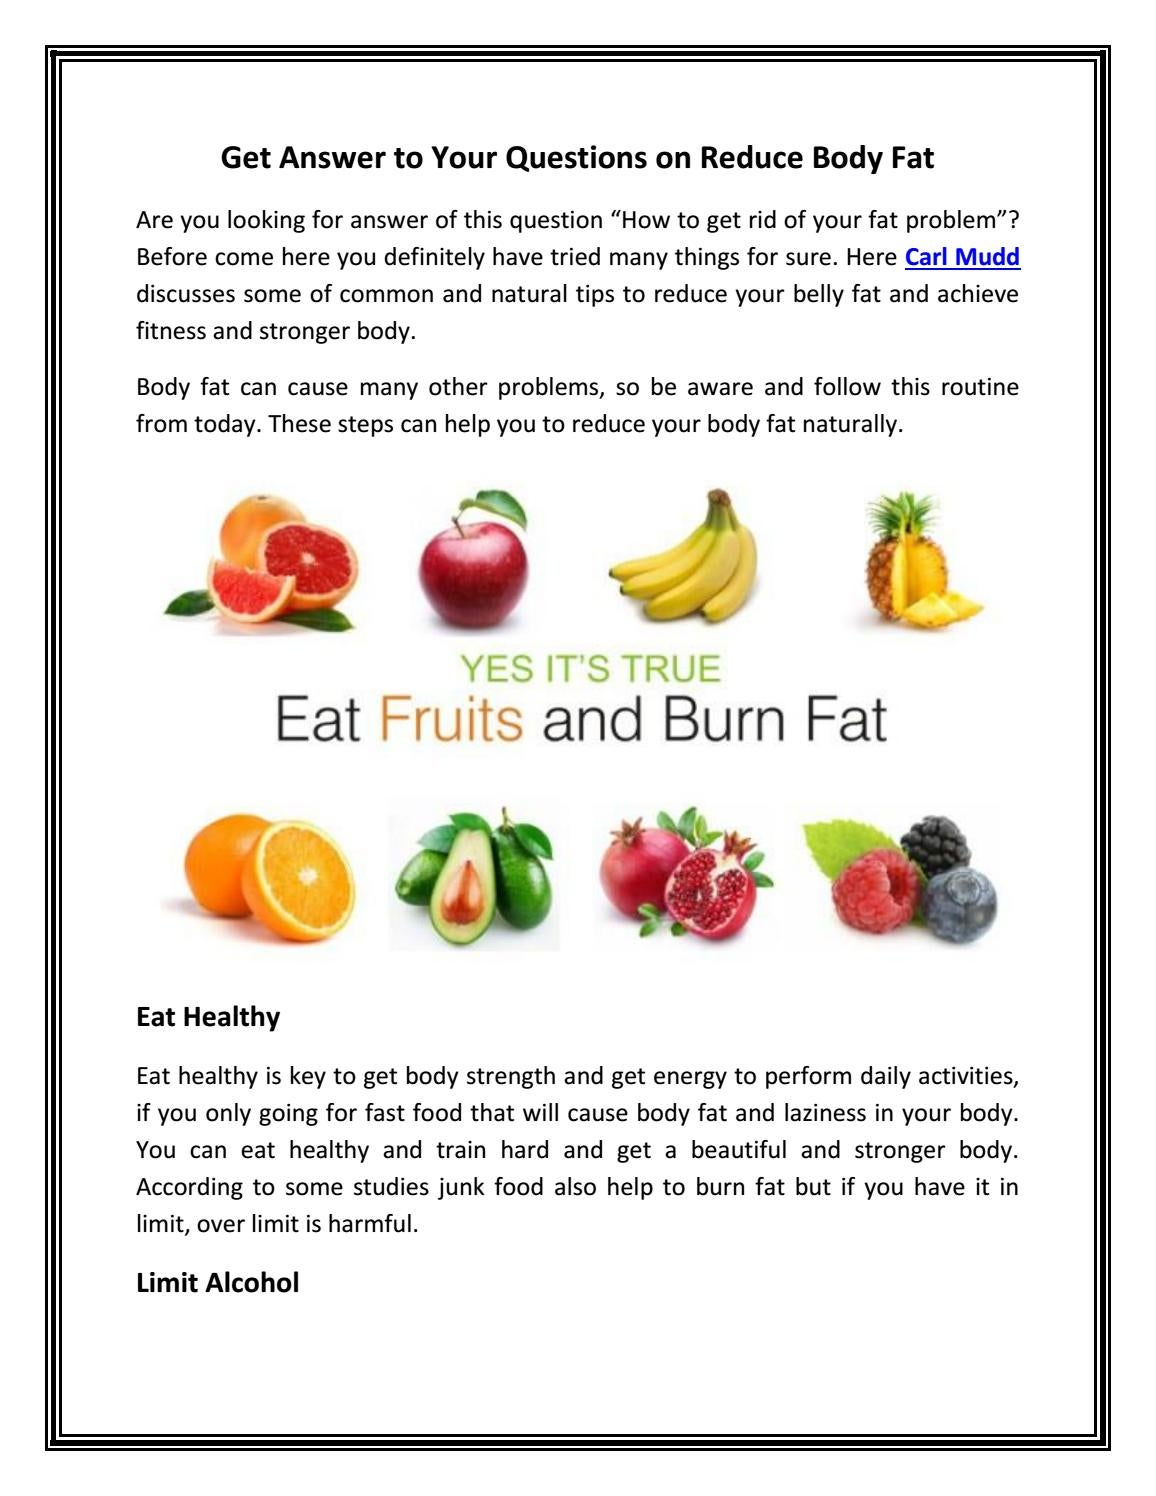 Get Answer to Your Questions on Reduce Body Fat by carlmuddus - issuu